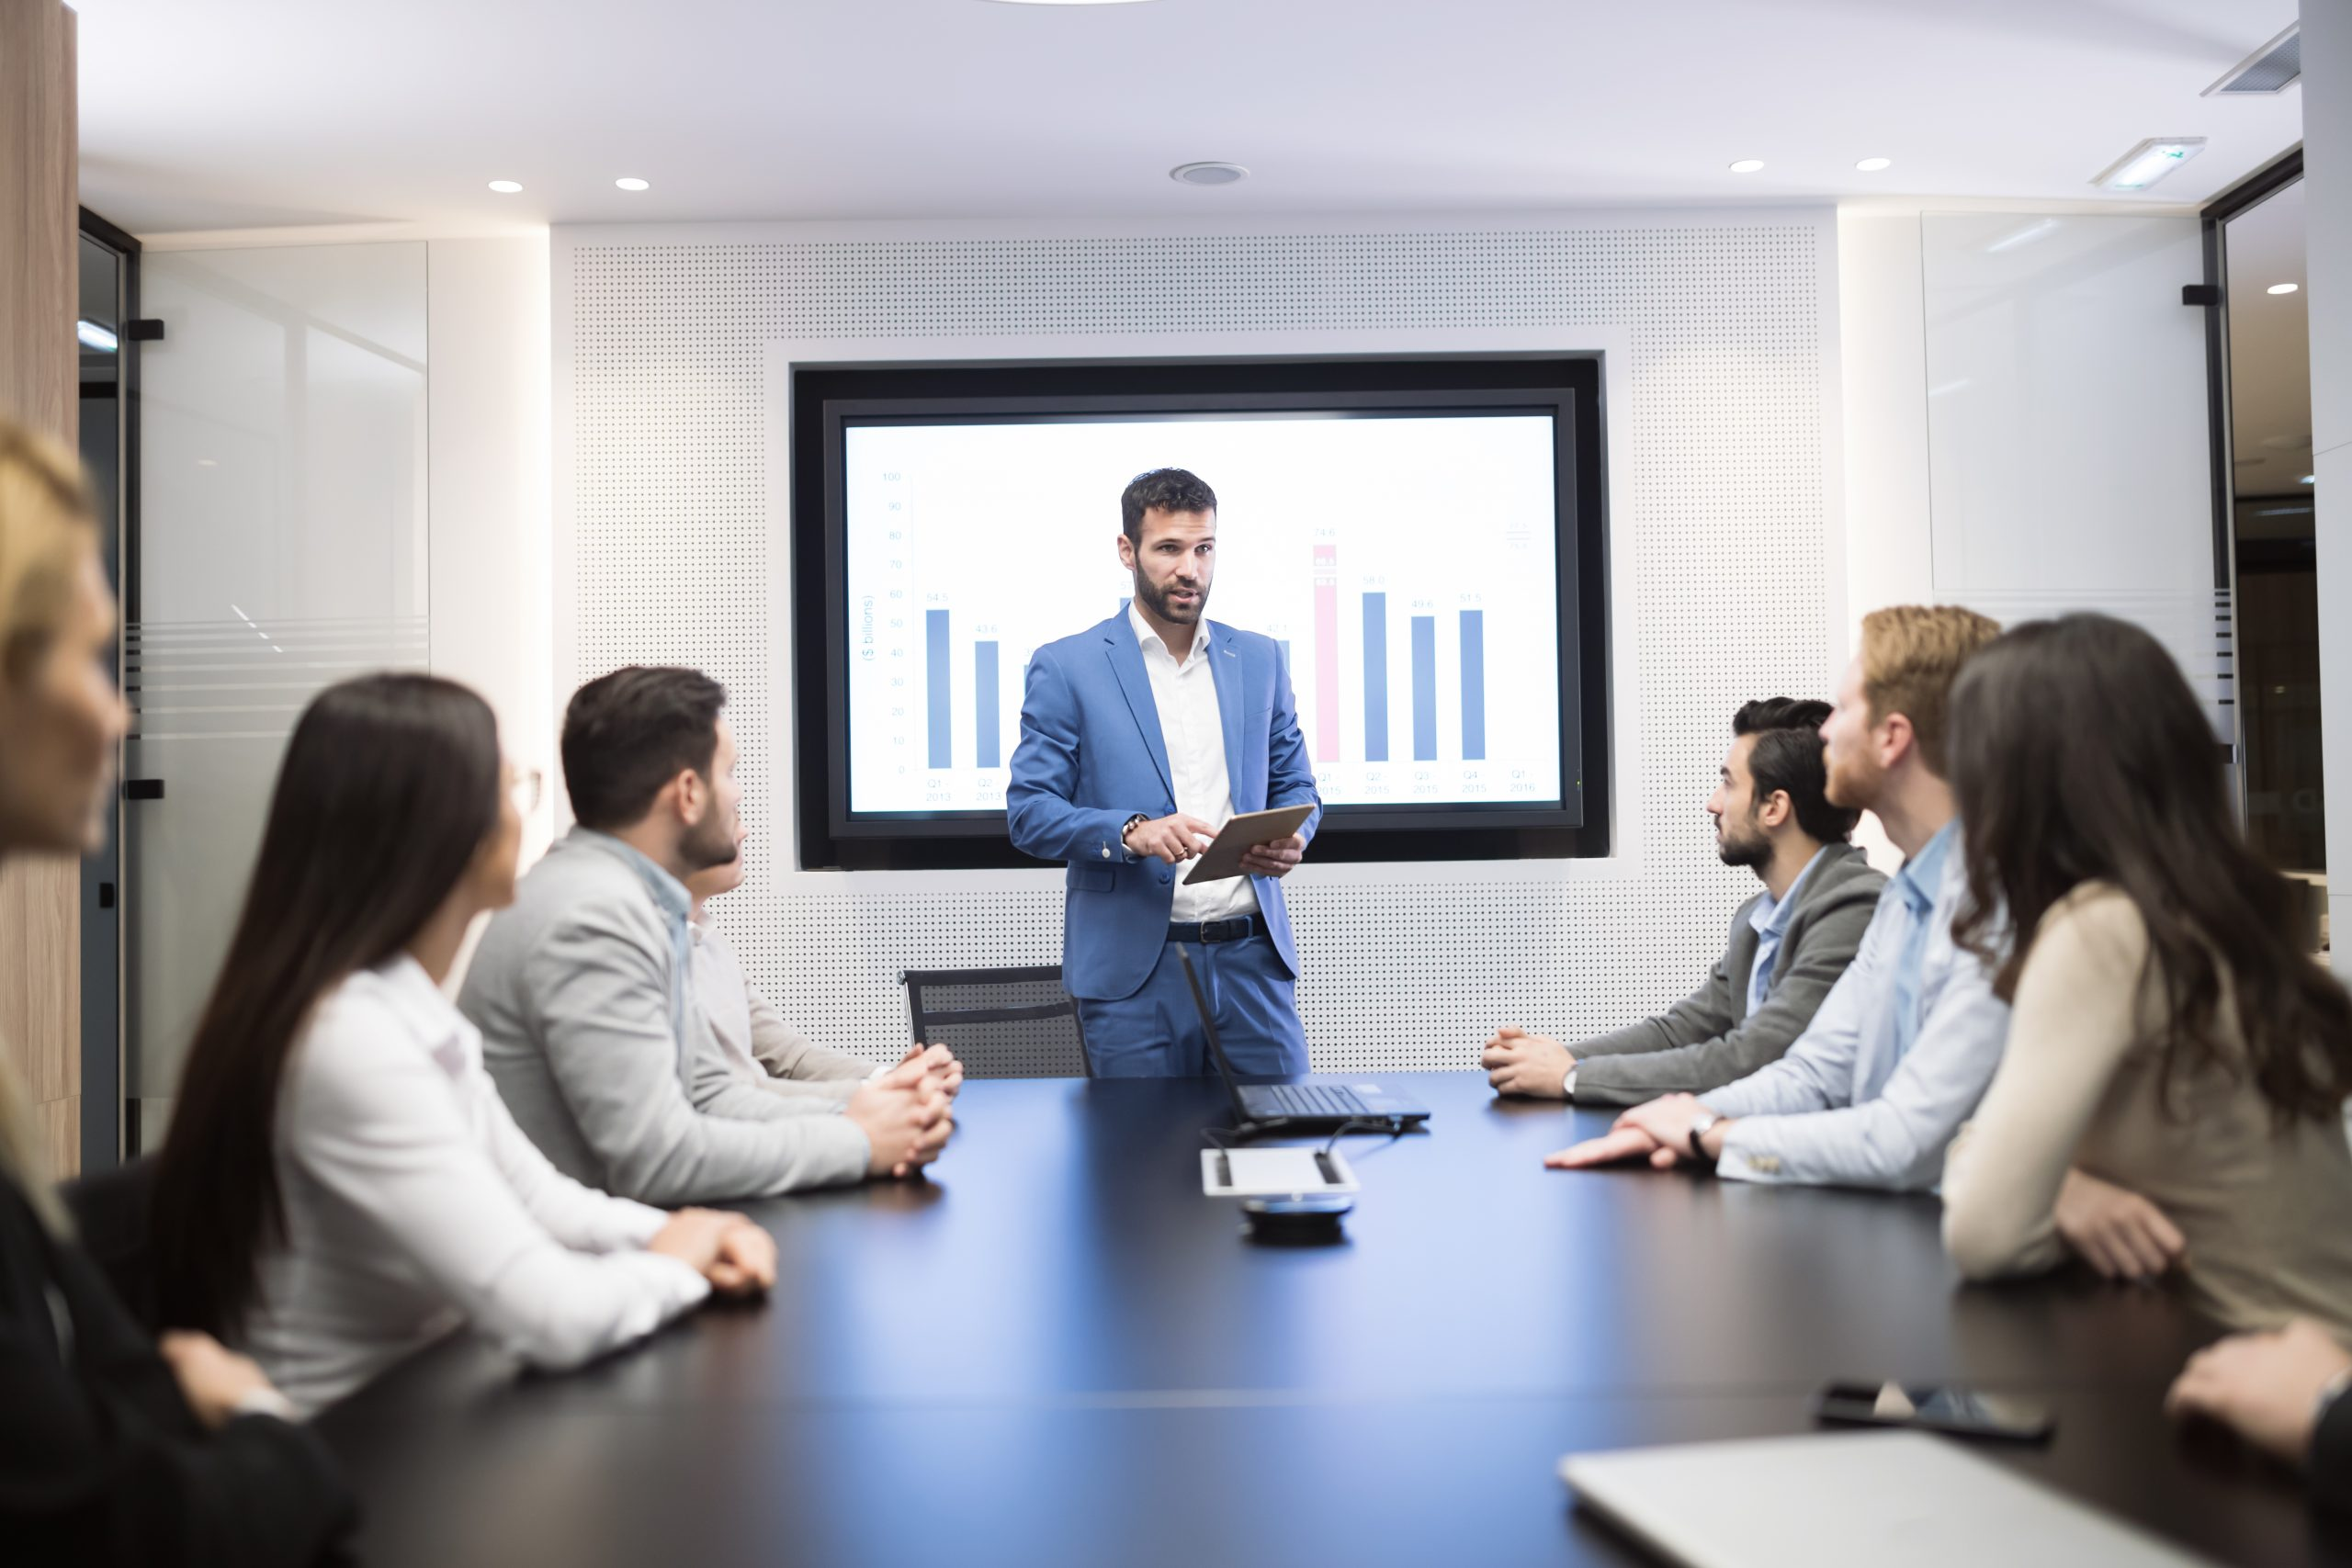 Meeting rooms need collaboration technology capabilities to enable team productivity.